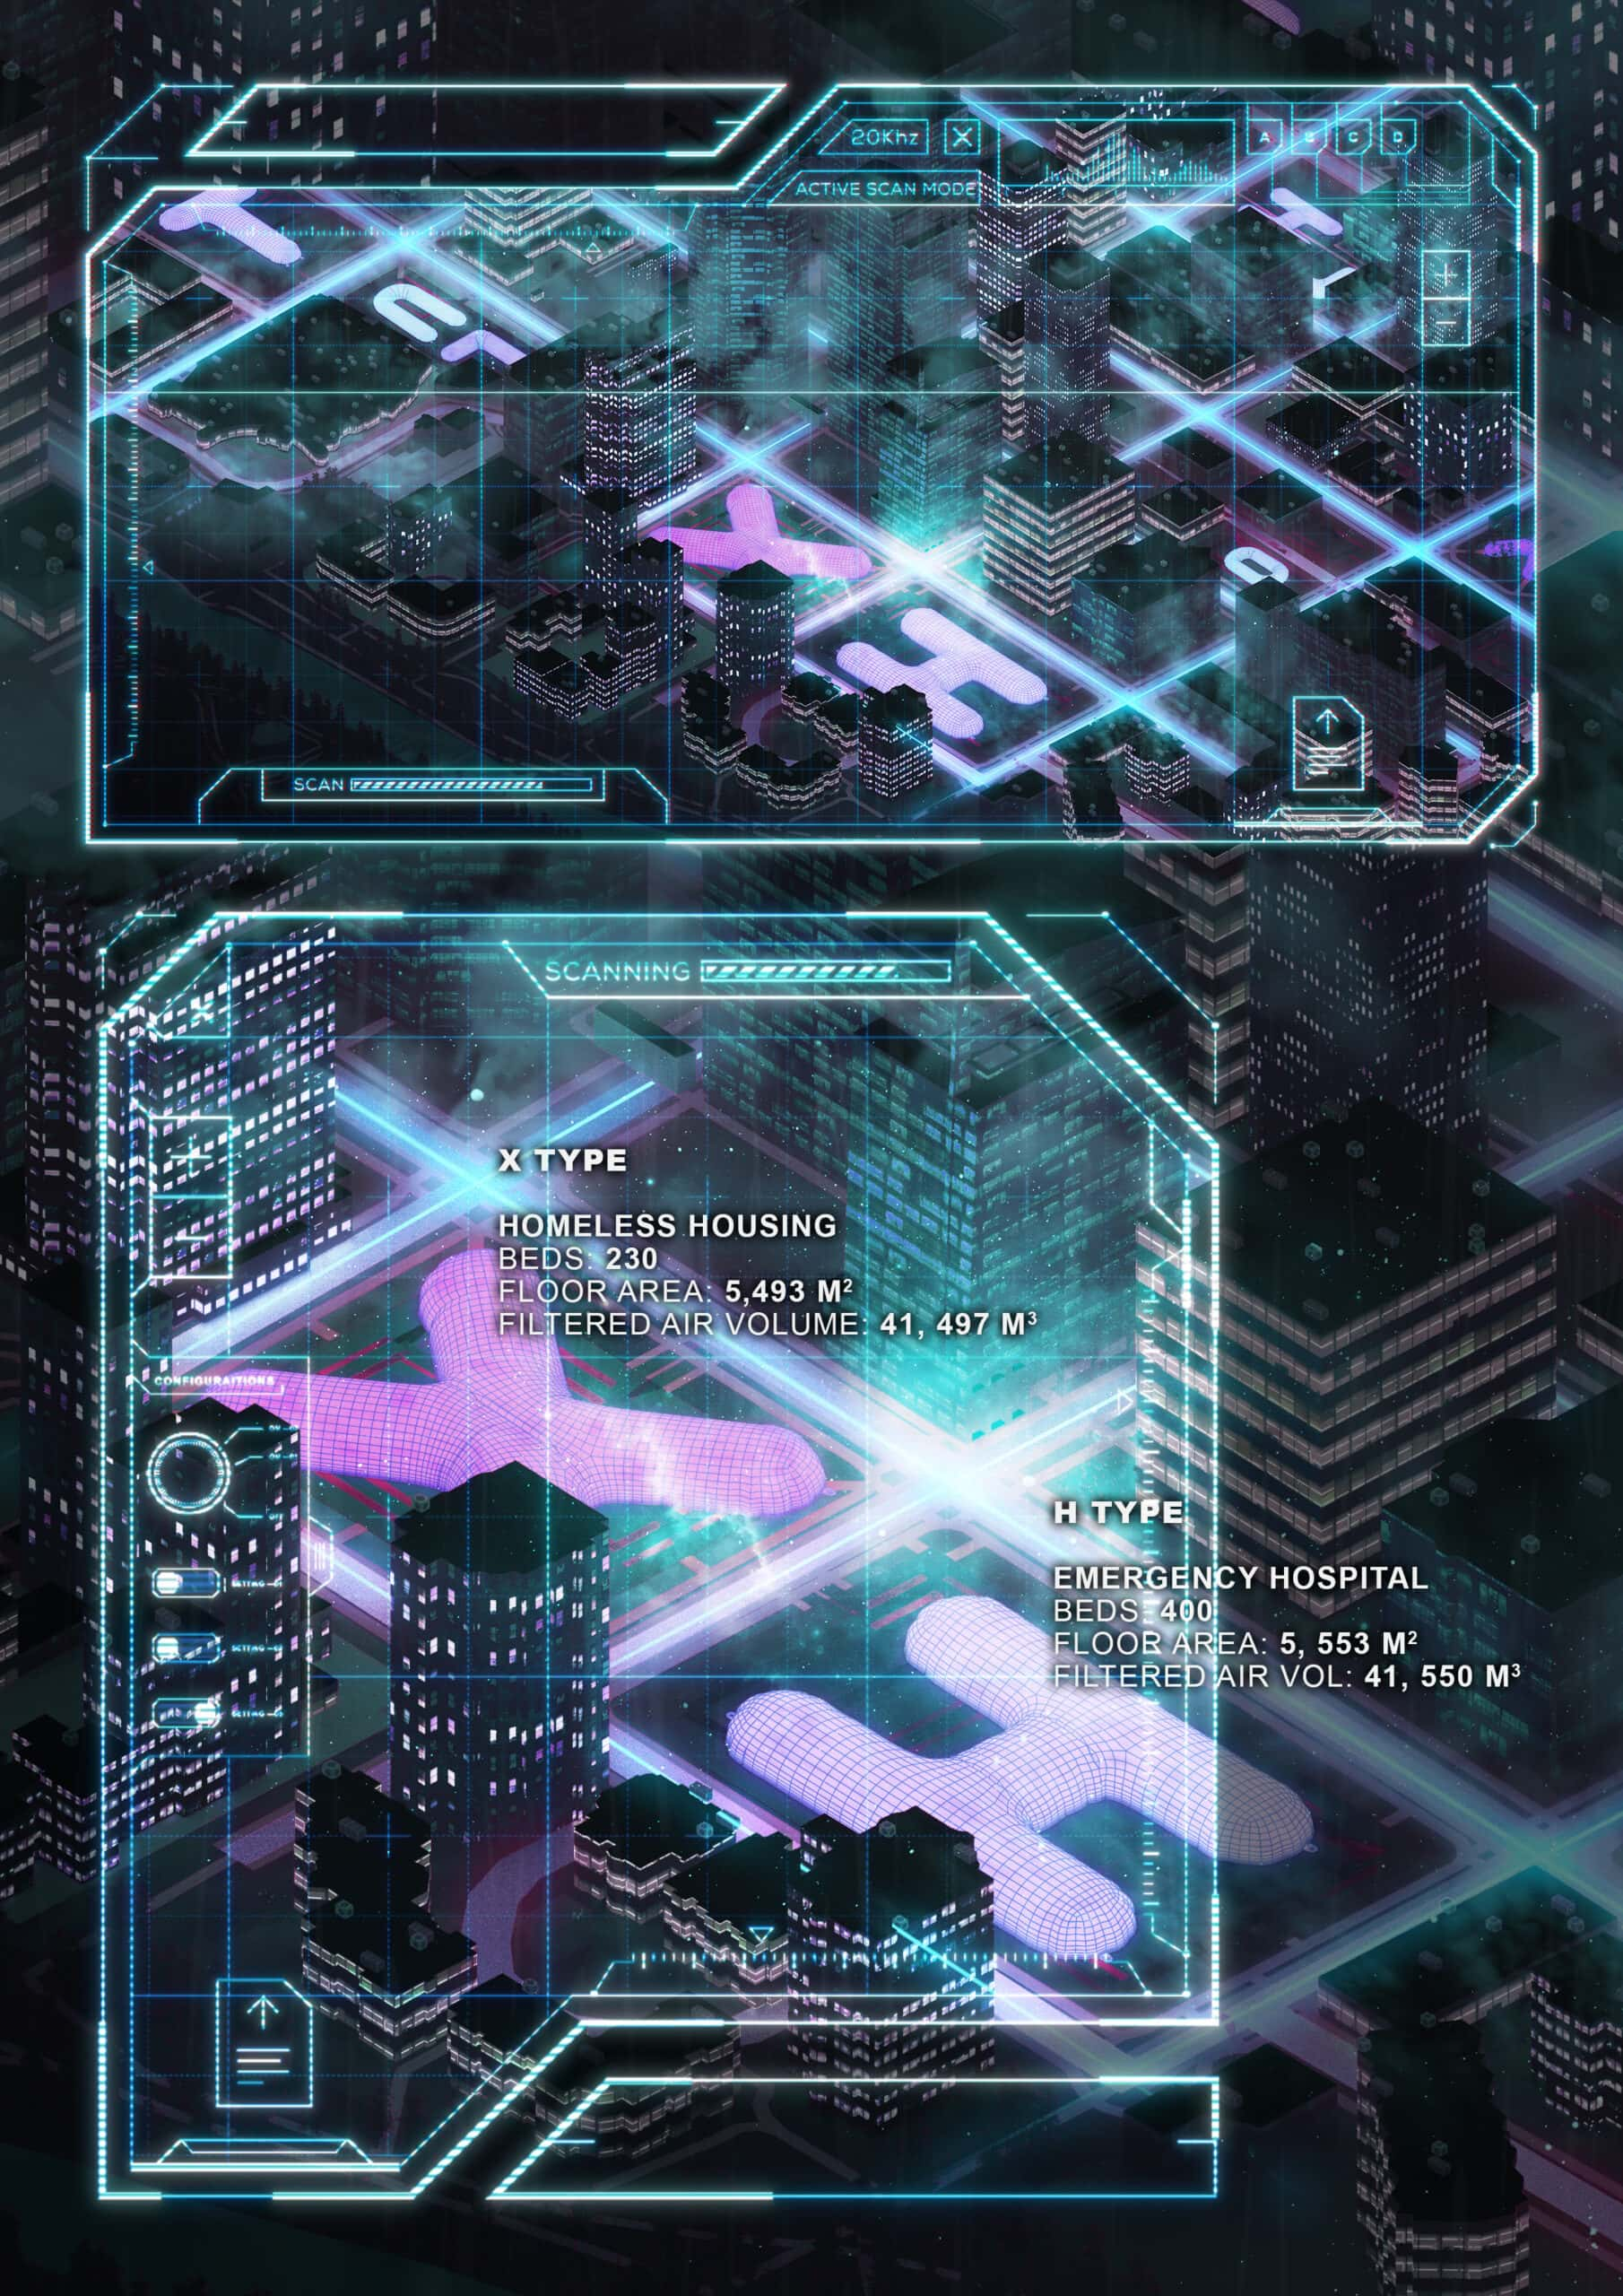 18296_Soft City_Functional